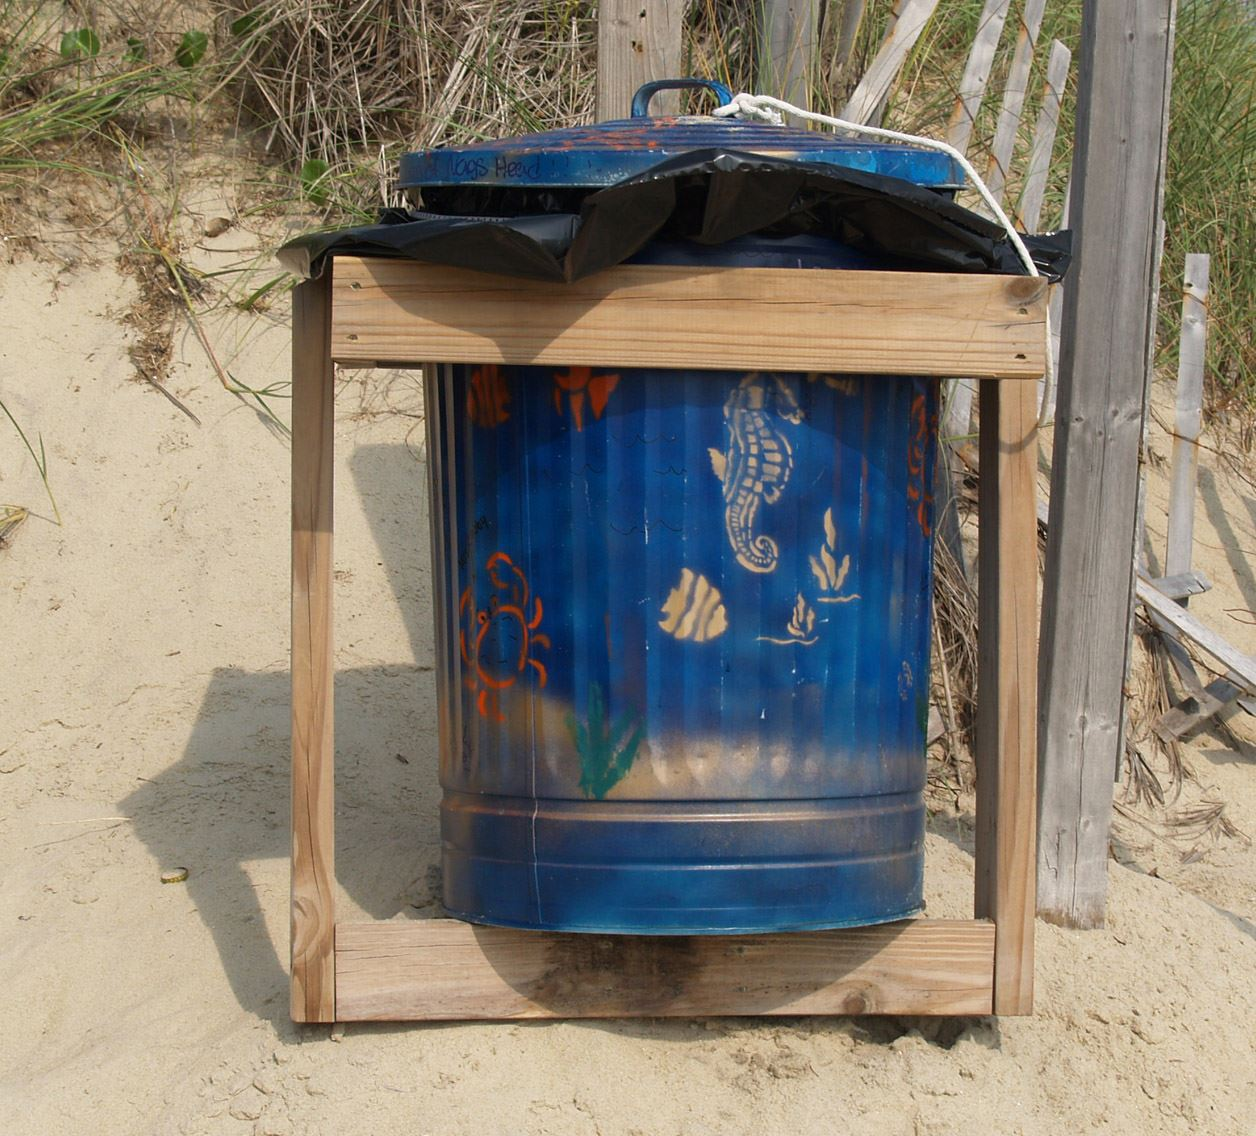 Trashcan Painted by Girl Scout Troop 2116